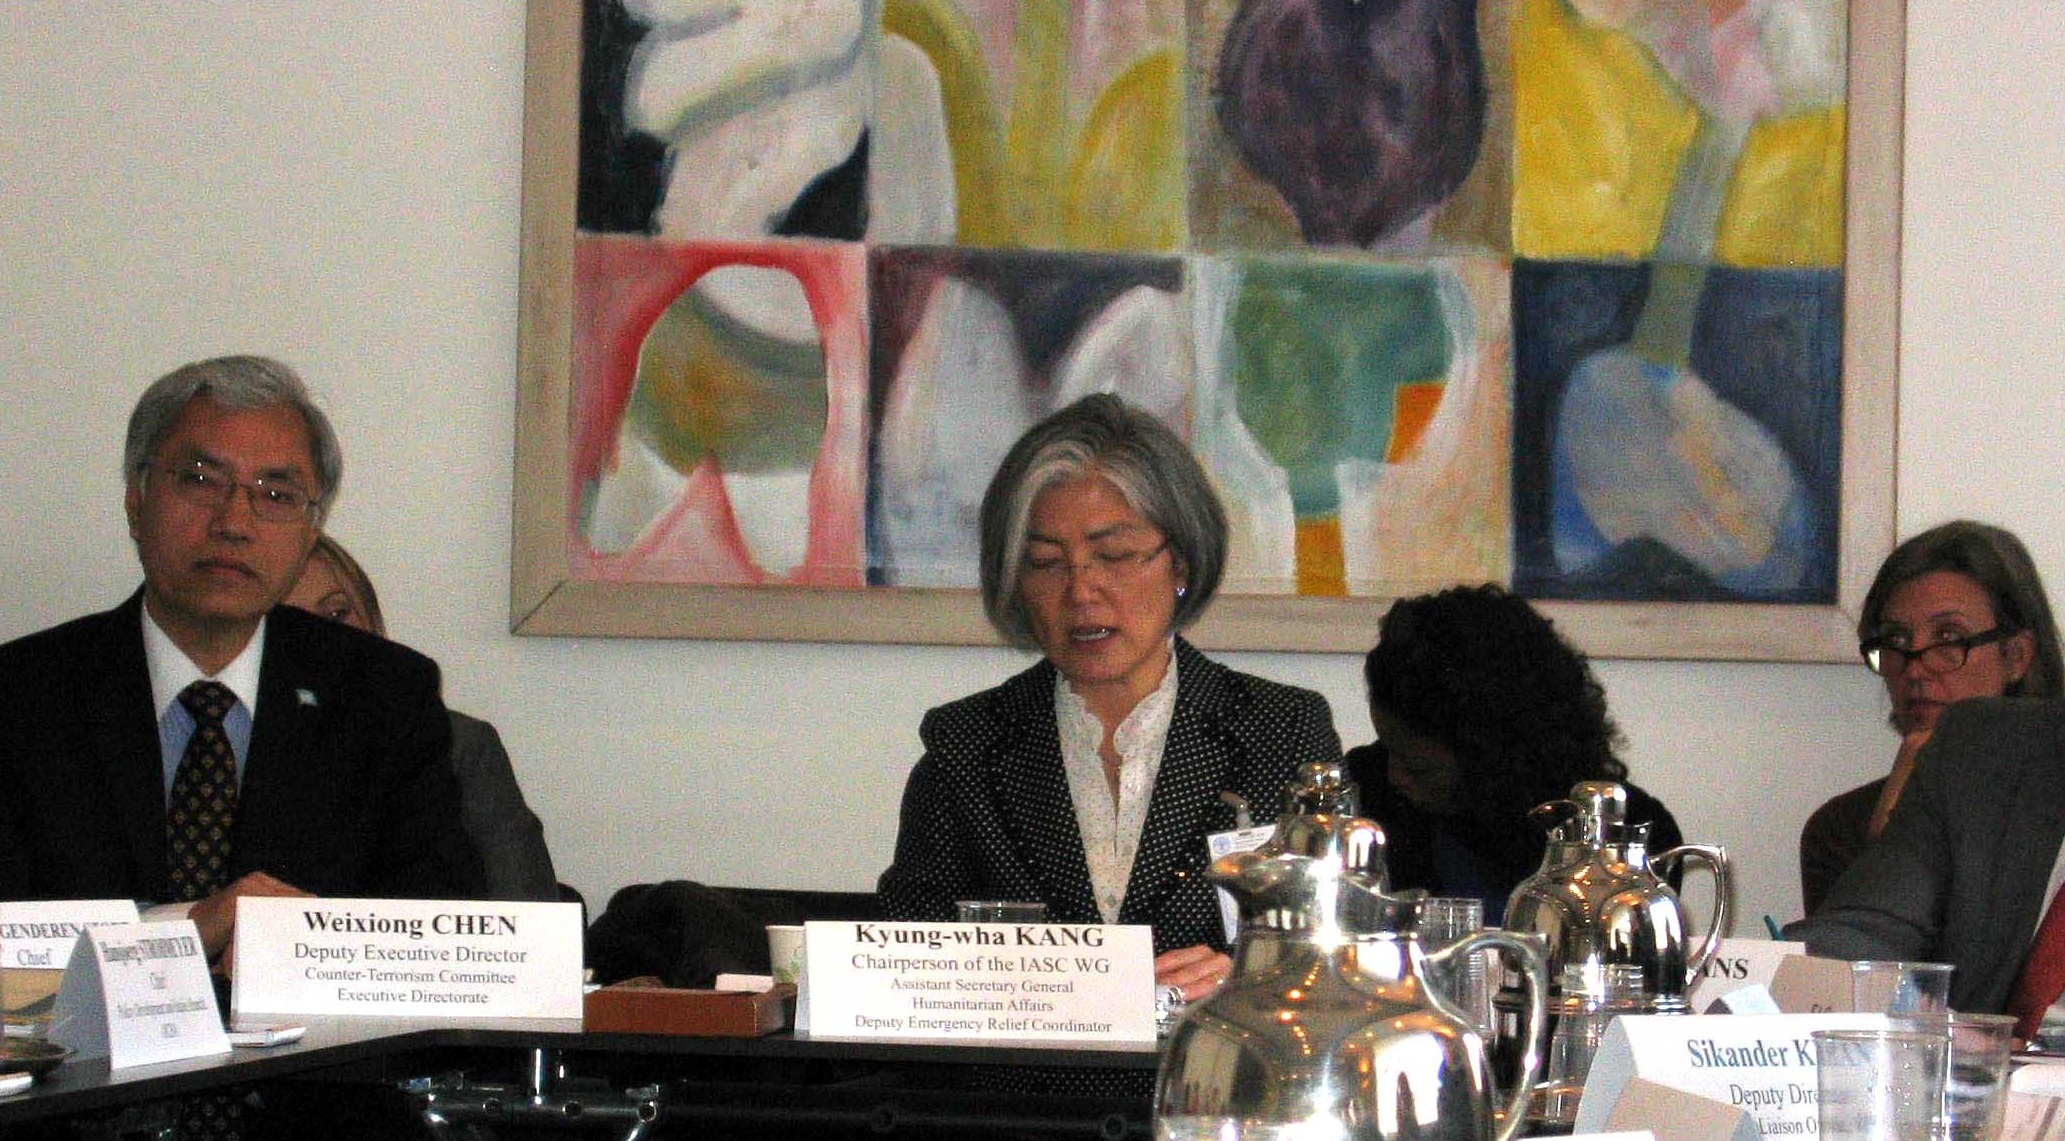 Weixiong Chen, Deputy Executive Director of CTED and Kyung-wha Kang, Chair of the IASC WG in the meeting that took place in Rome ealrier this month.